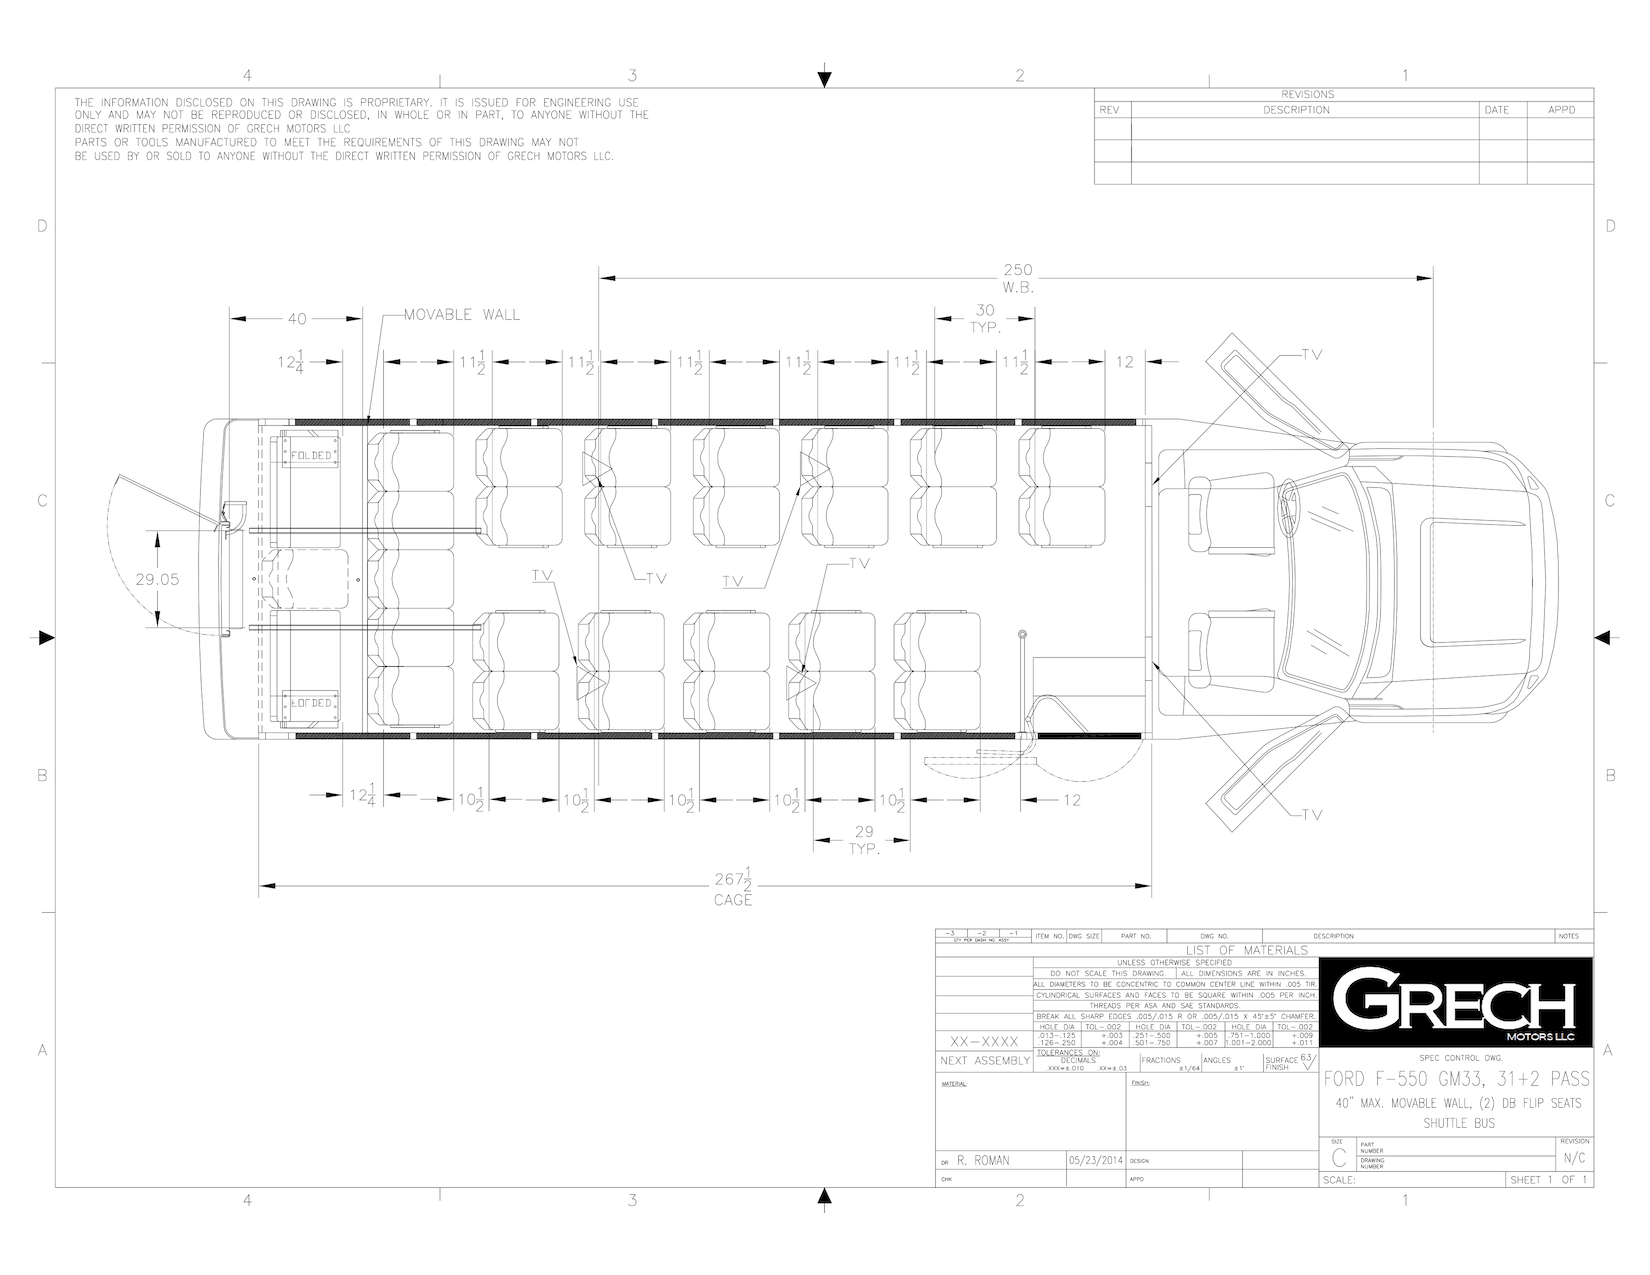 F-550 GM33 31+2, 40in Max. Movable Wall, 2 DB Flip Seats new website.png